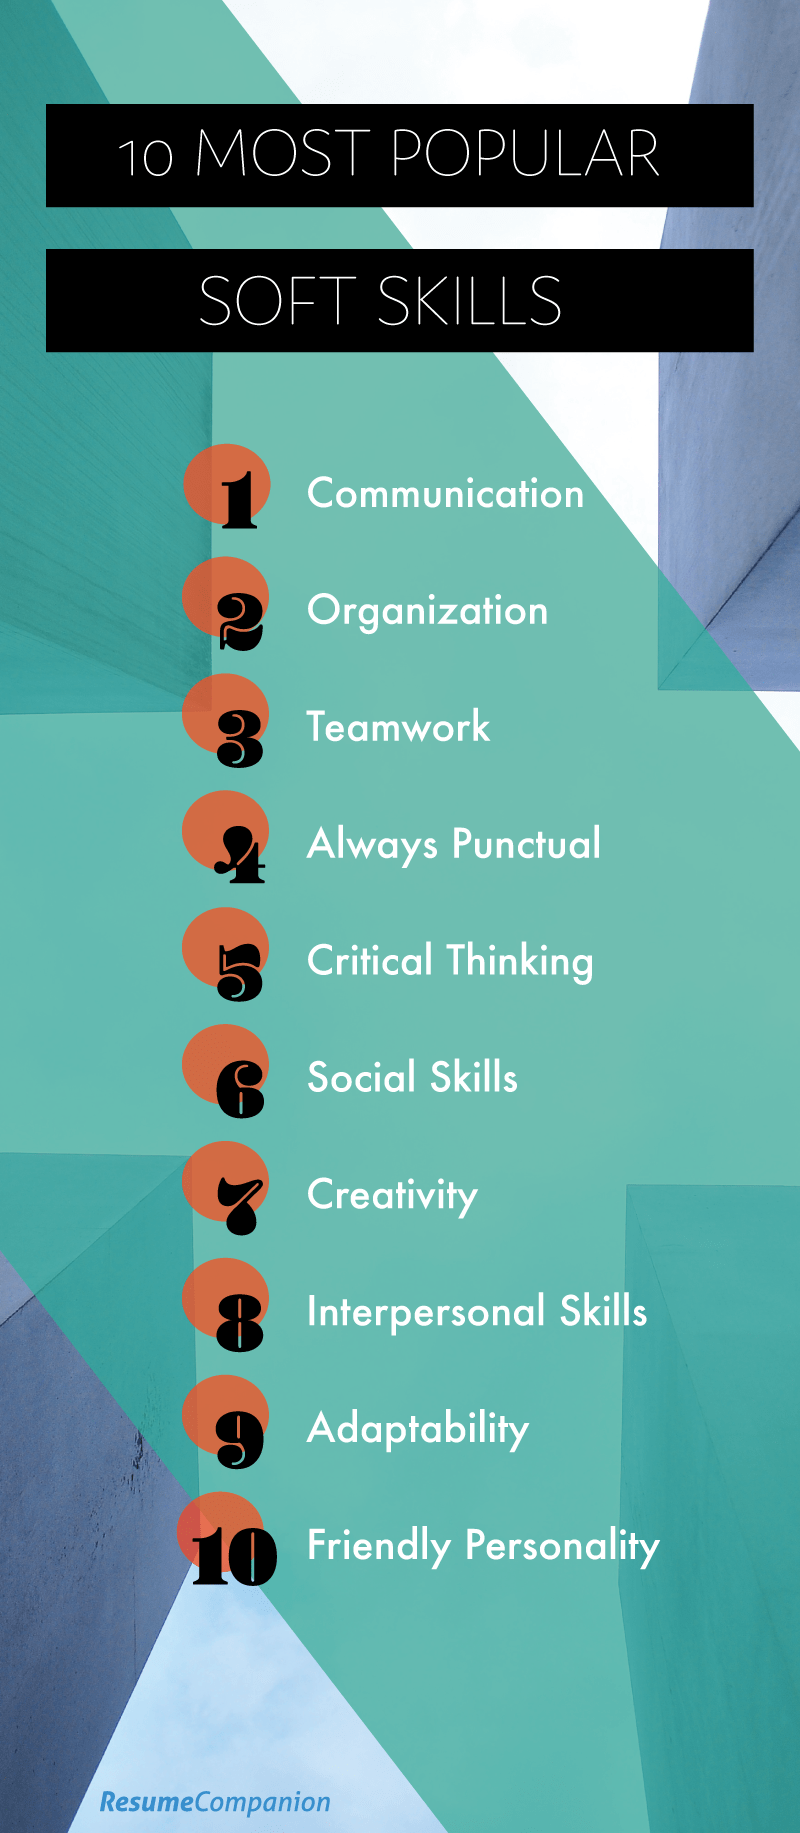 top 10 soft skills for a resume employers look for infographic & 20+ Skills for Resumes (Examples Included) | Resume Companion